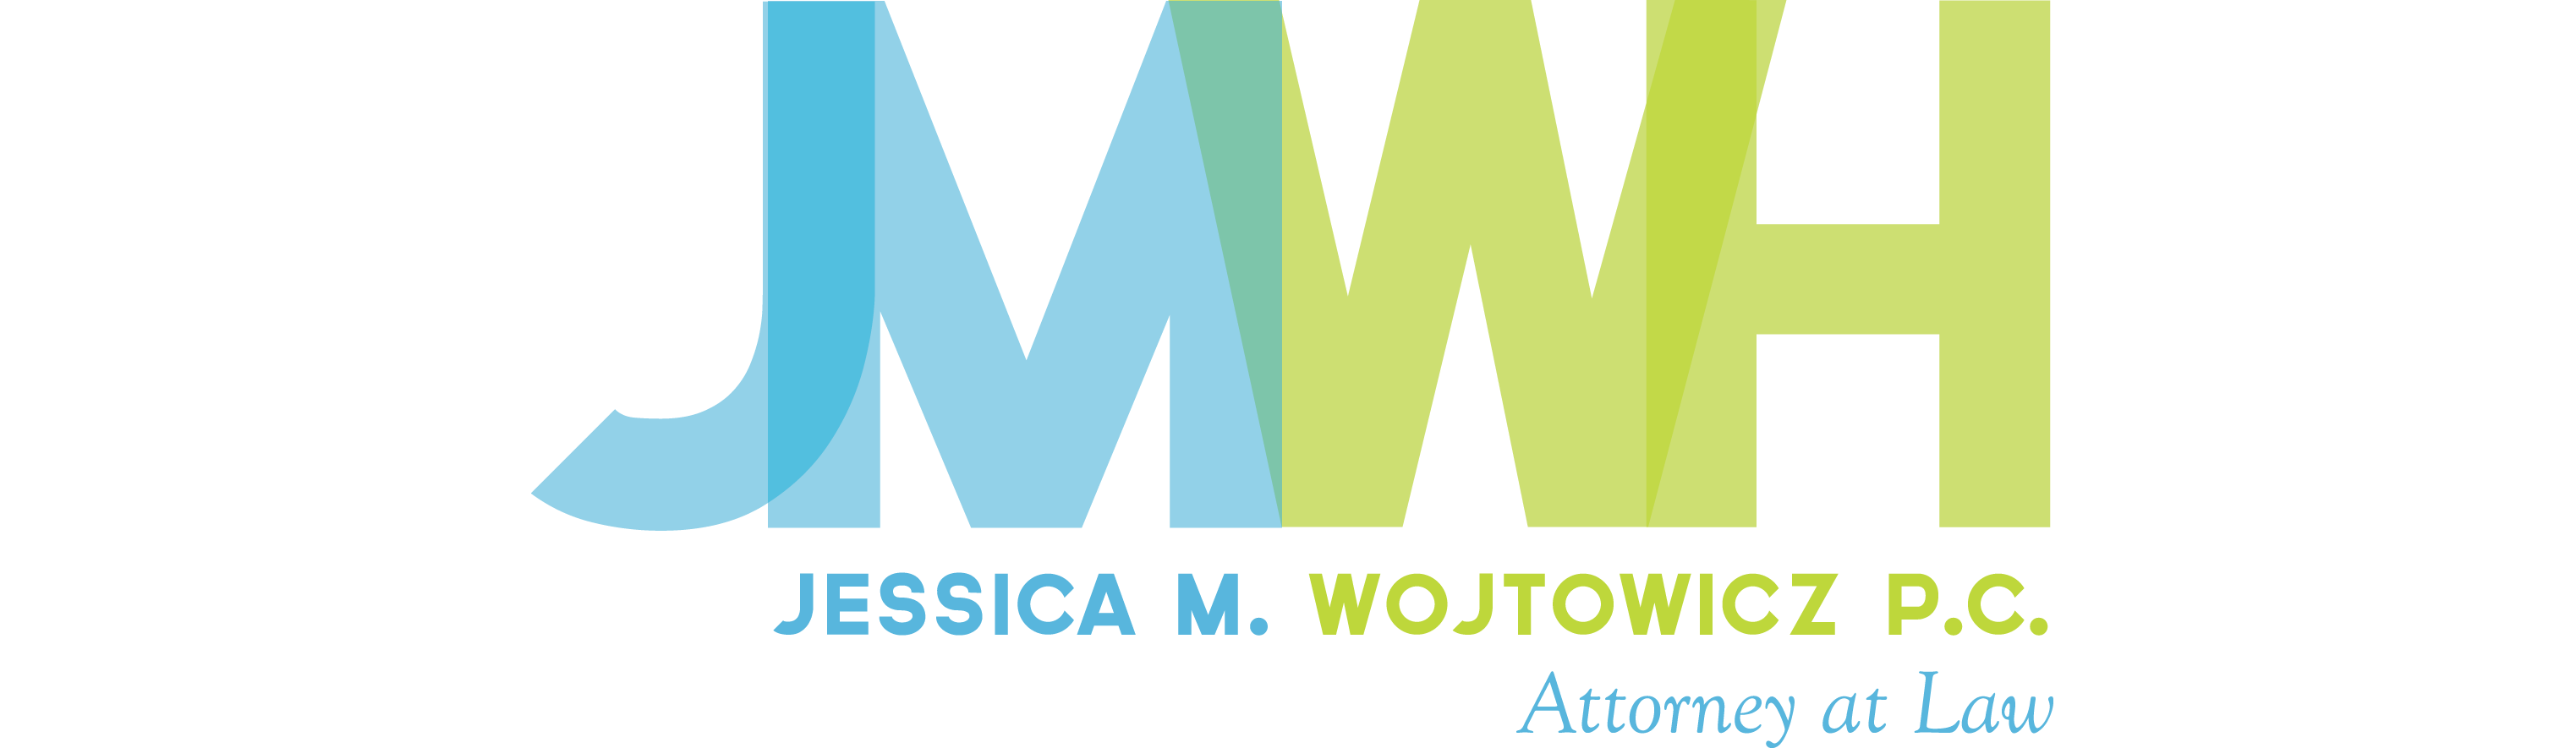 Jessica M W Heston, Attorney at Law